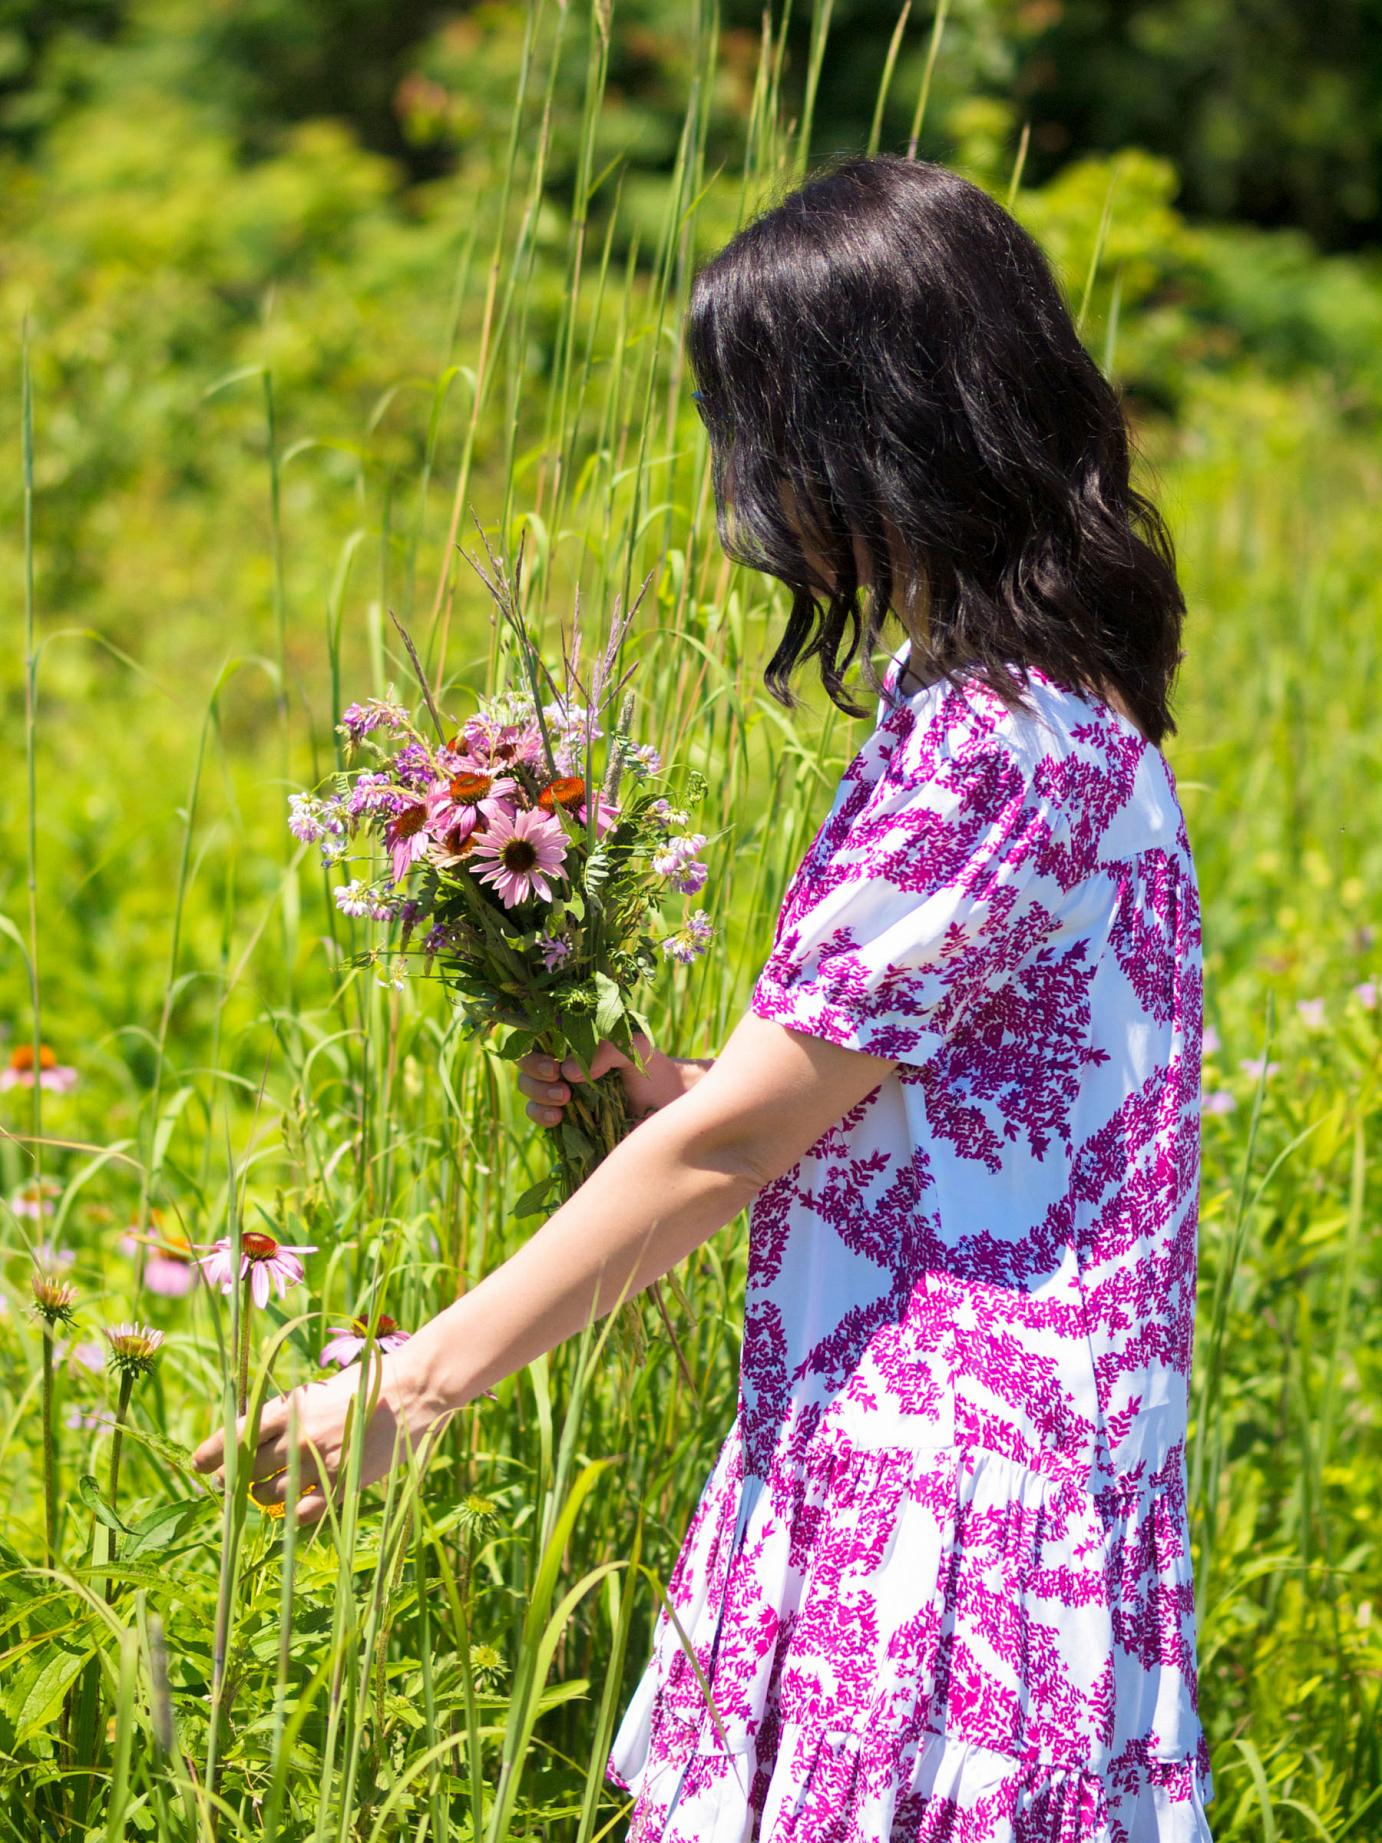 bitterswee tcolours, weekend look, floral dress, summer style, corn field, wild flowers, zara sandals, pink, en plein air, H&M dress, summer dress,